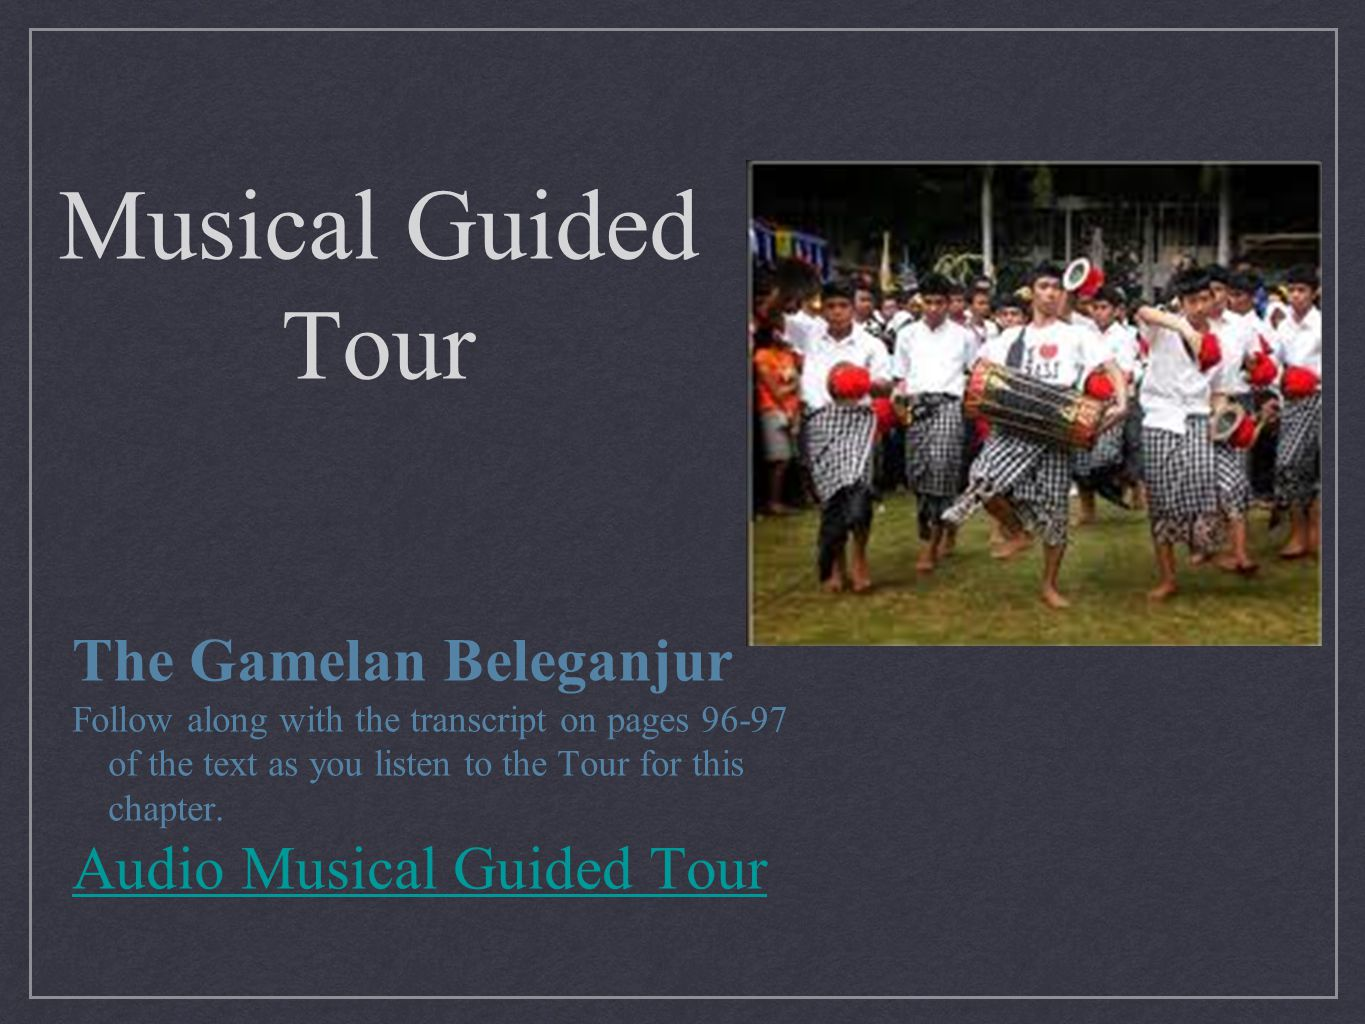 Musical Guided Tour The Gamelan Beleganjur Follow along with the transcript on pages 96-97 of the text as you listen to the Tour for this chapter. Aud